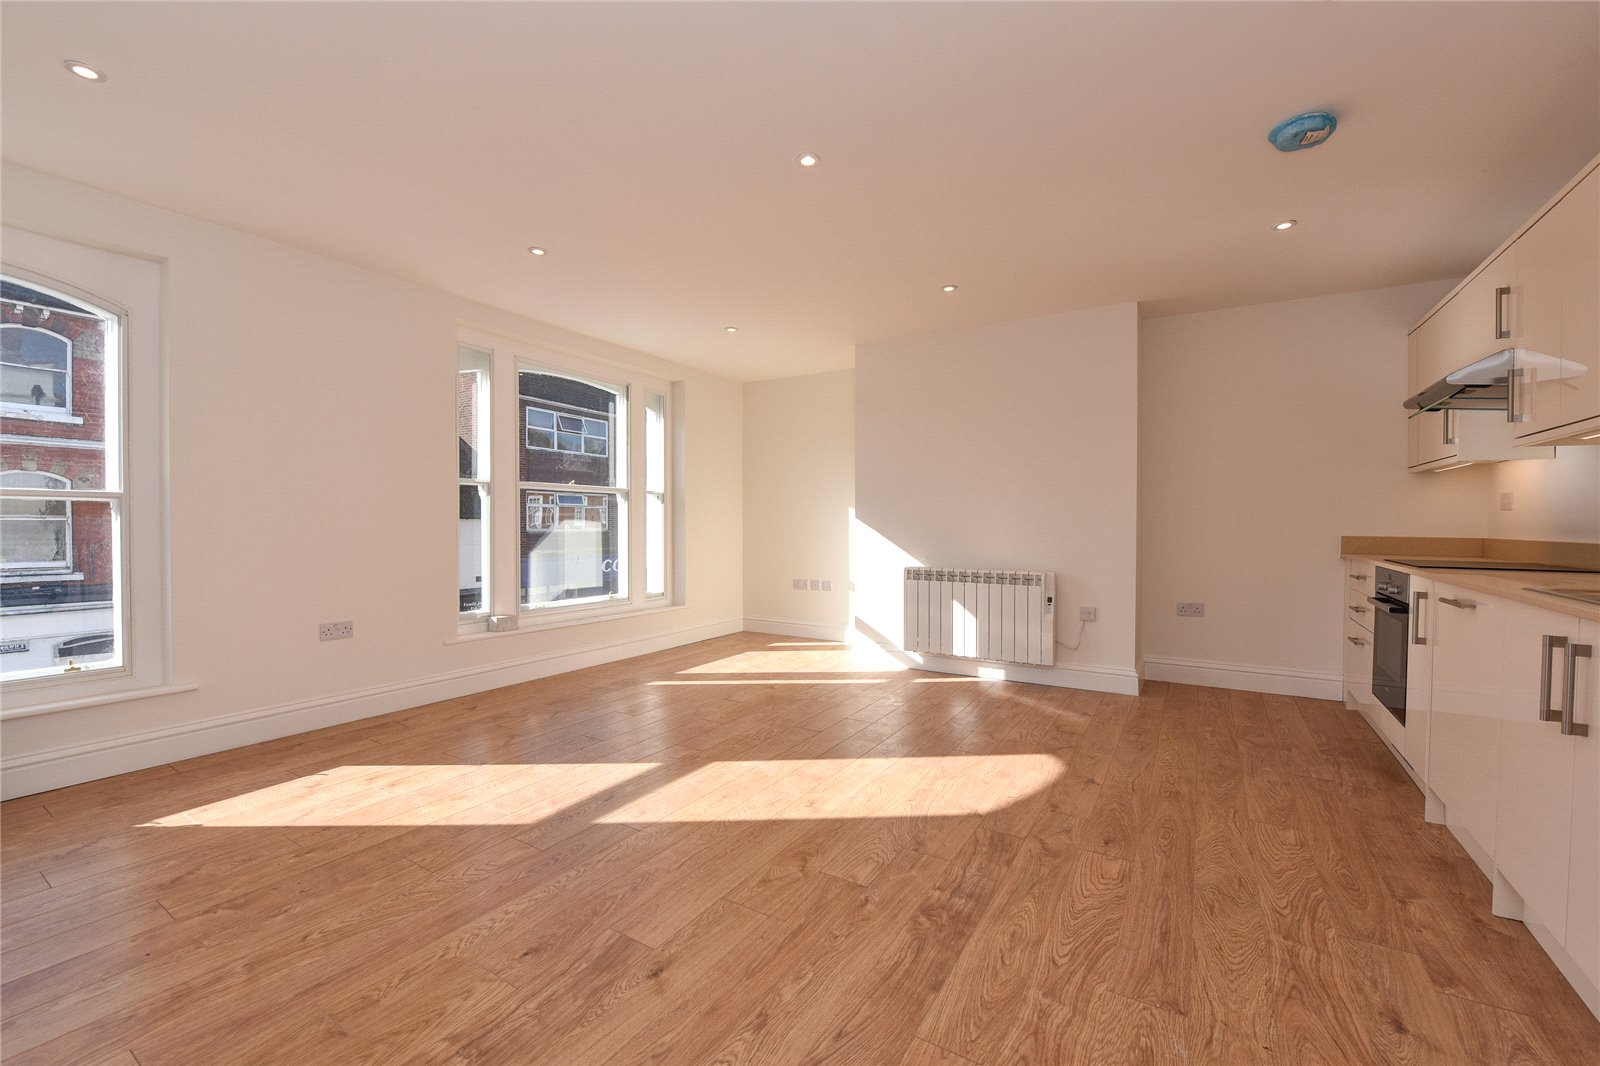 Apartment C – 2 Bedroom Ground Floor - £249,950 - Available